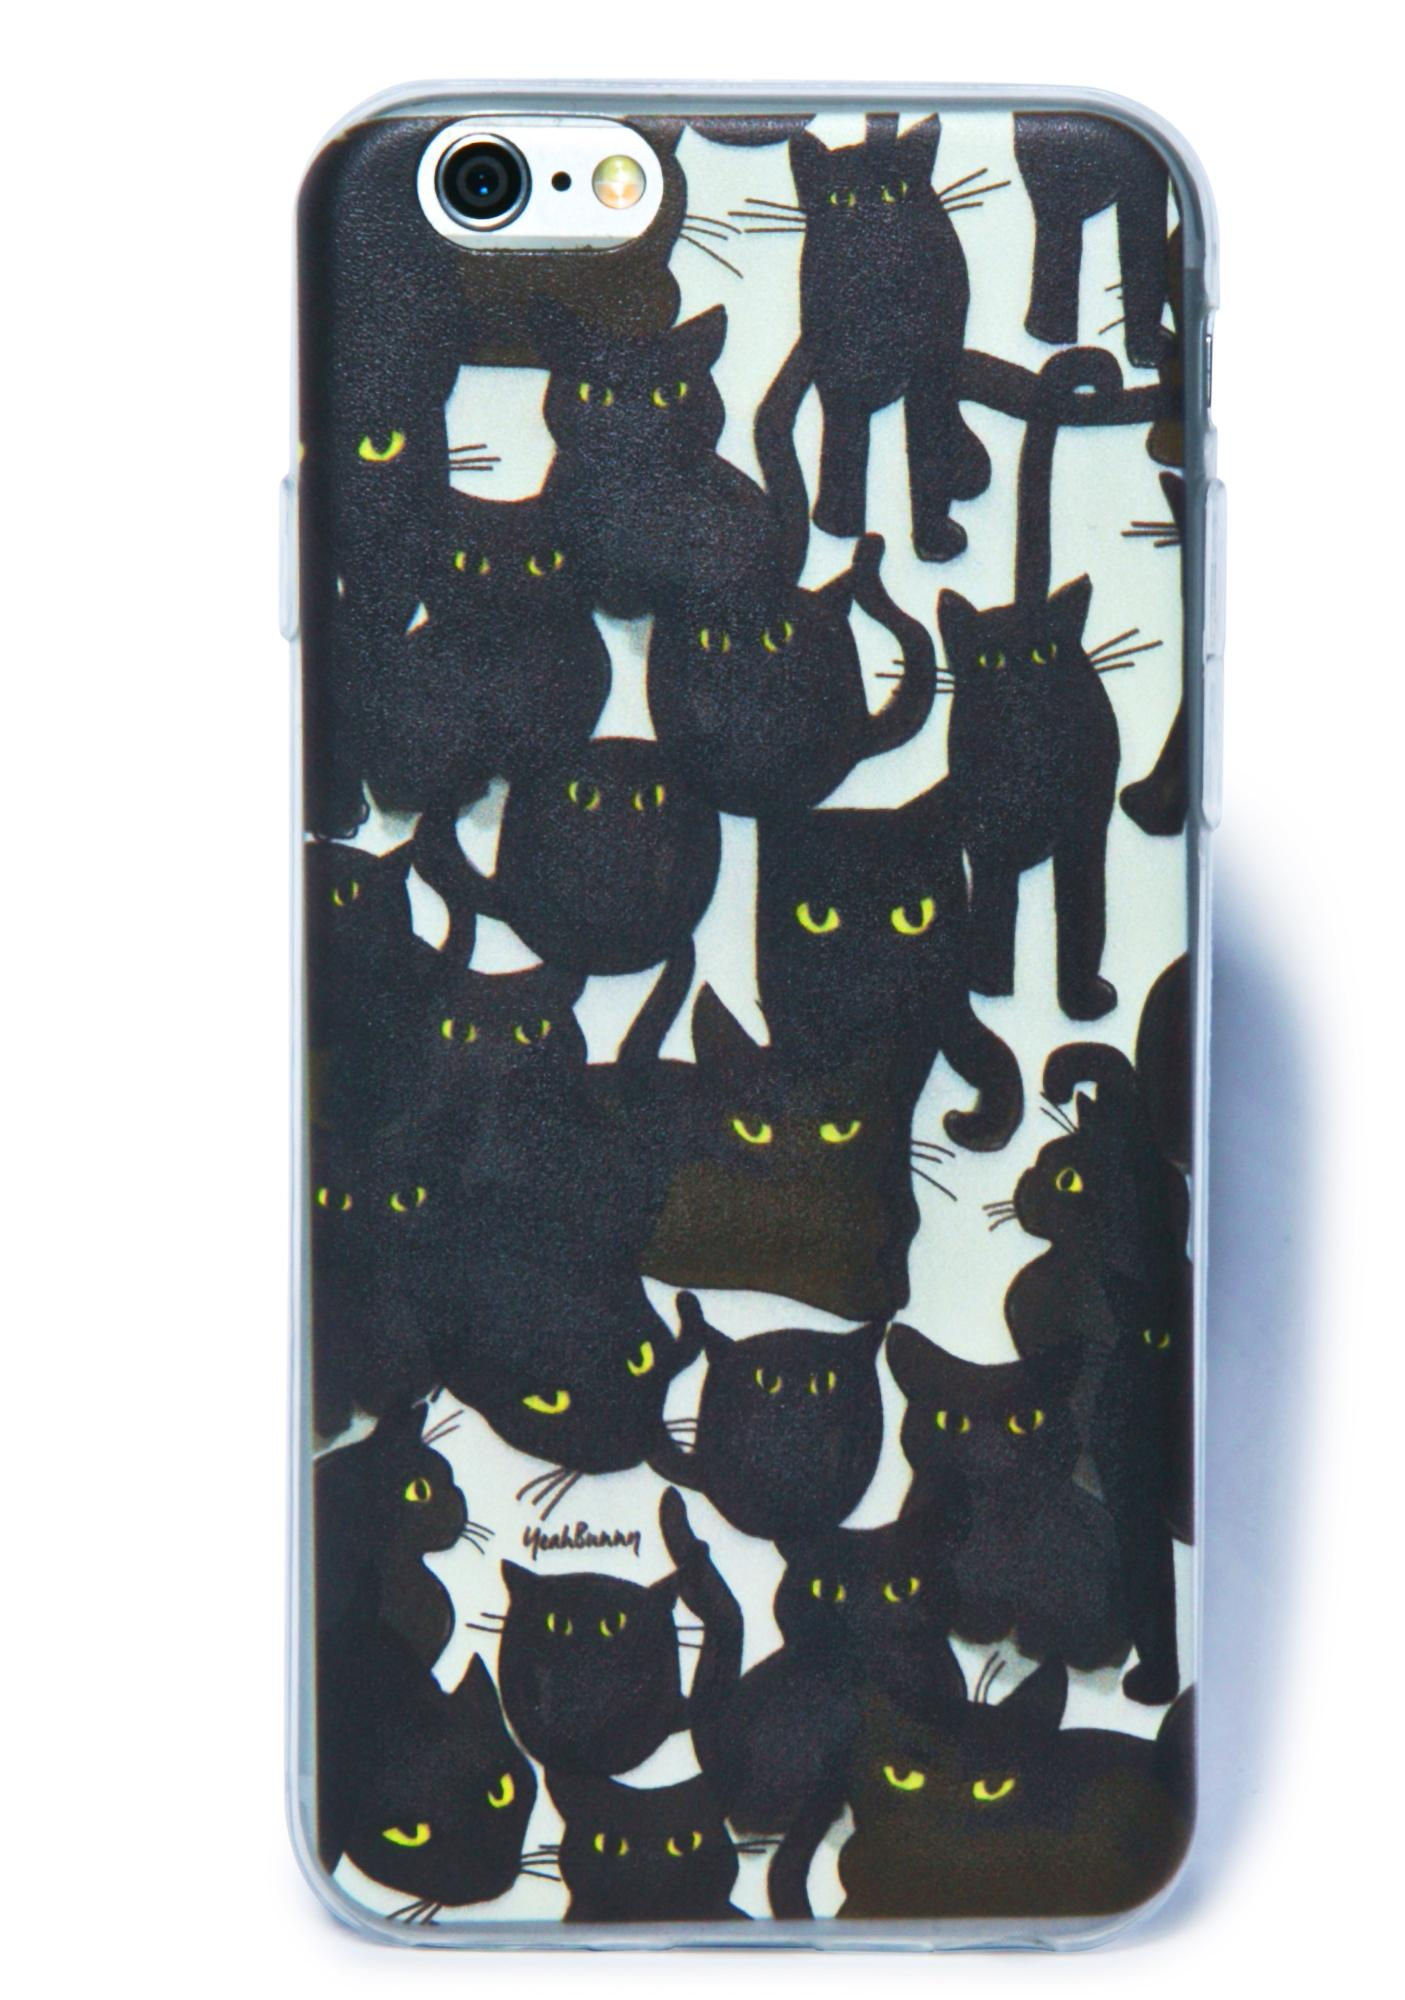 Yeah Bunny Cats Attack iPhone 6 Case